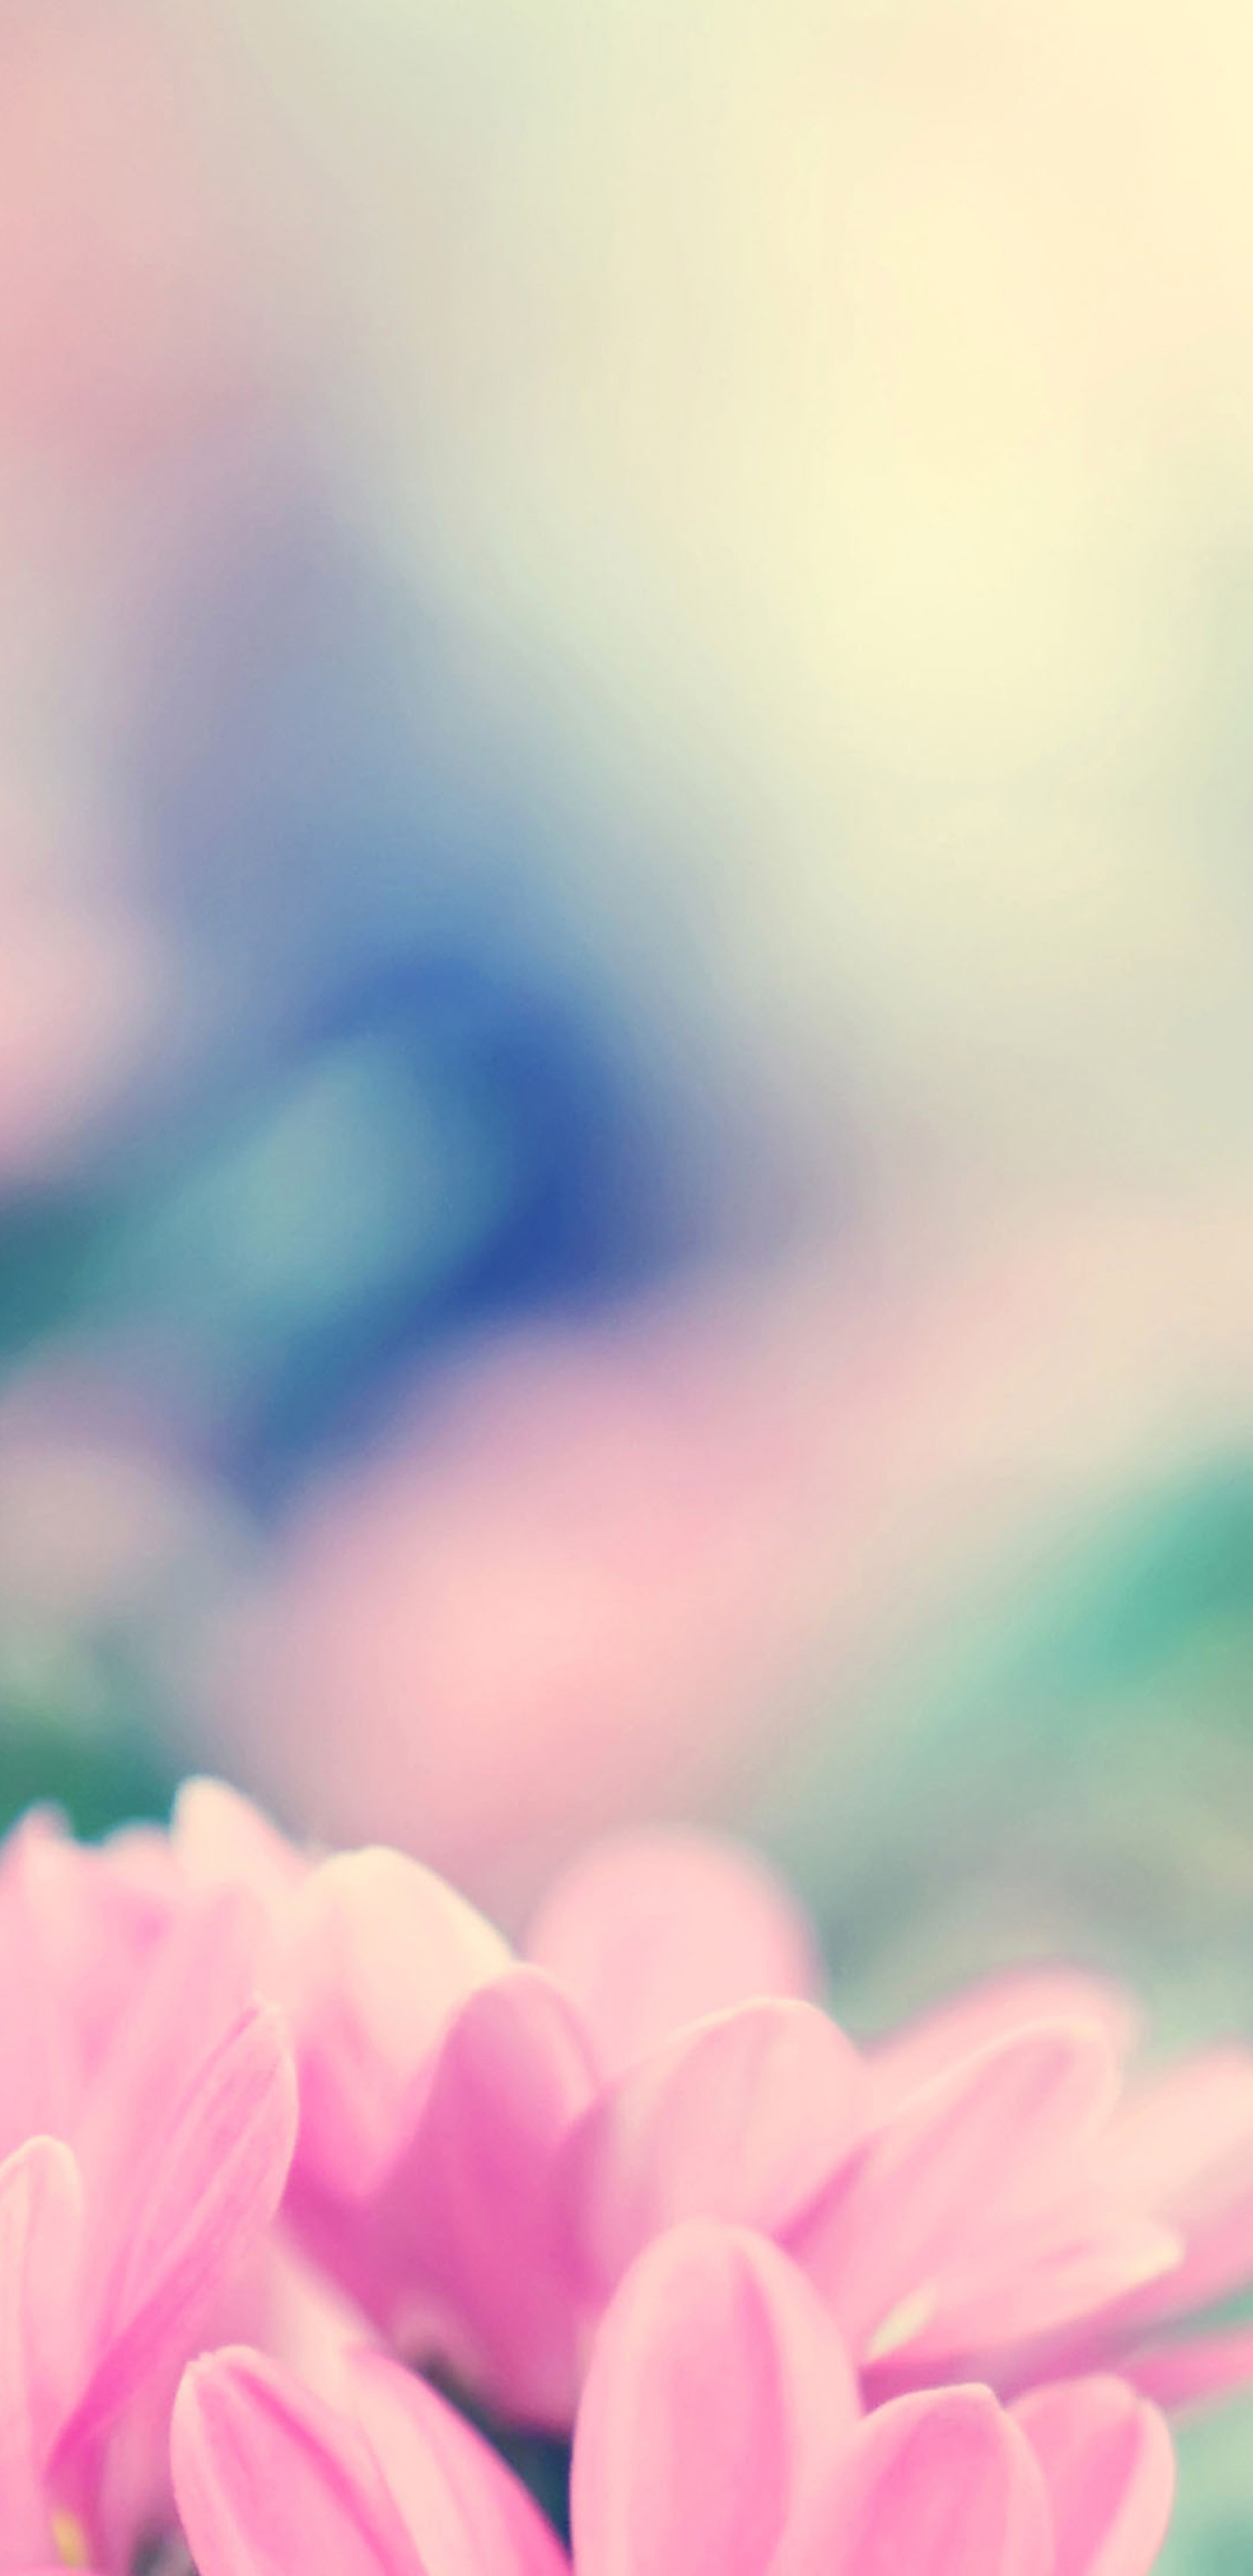 Res: 1440x2960, Pink flowers blurred Galaxy Note 8 Wallpaper